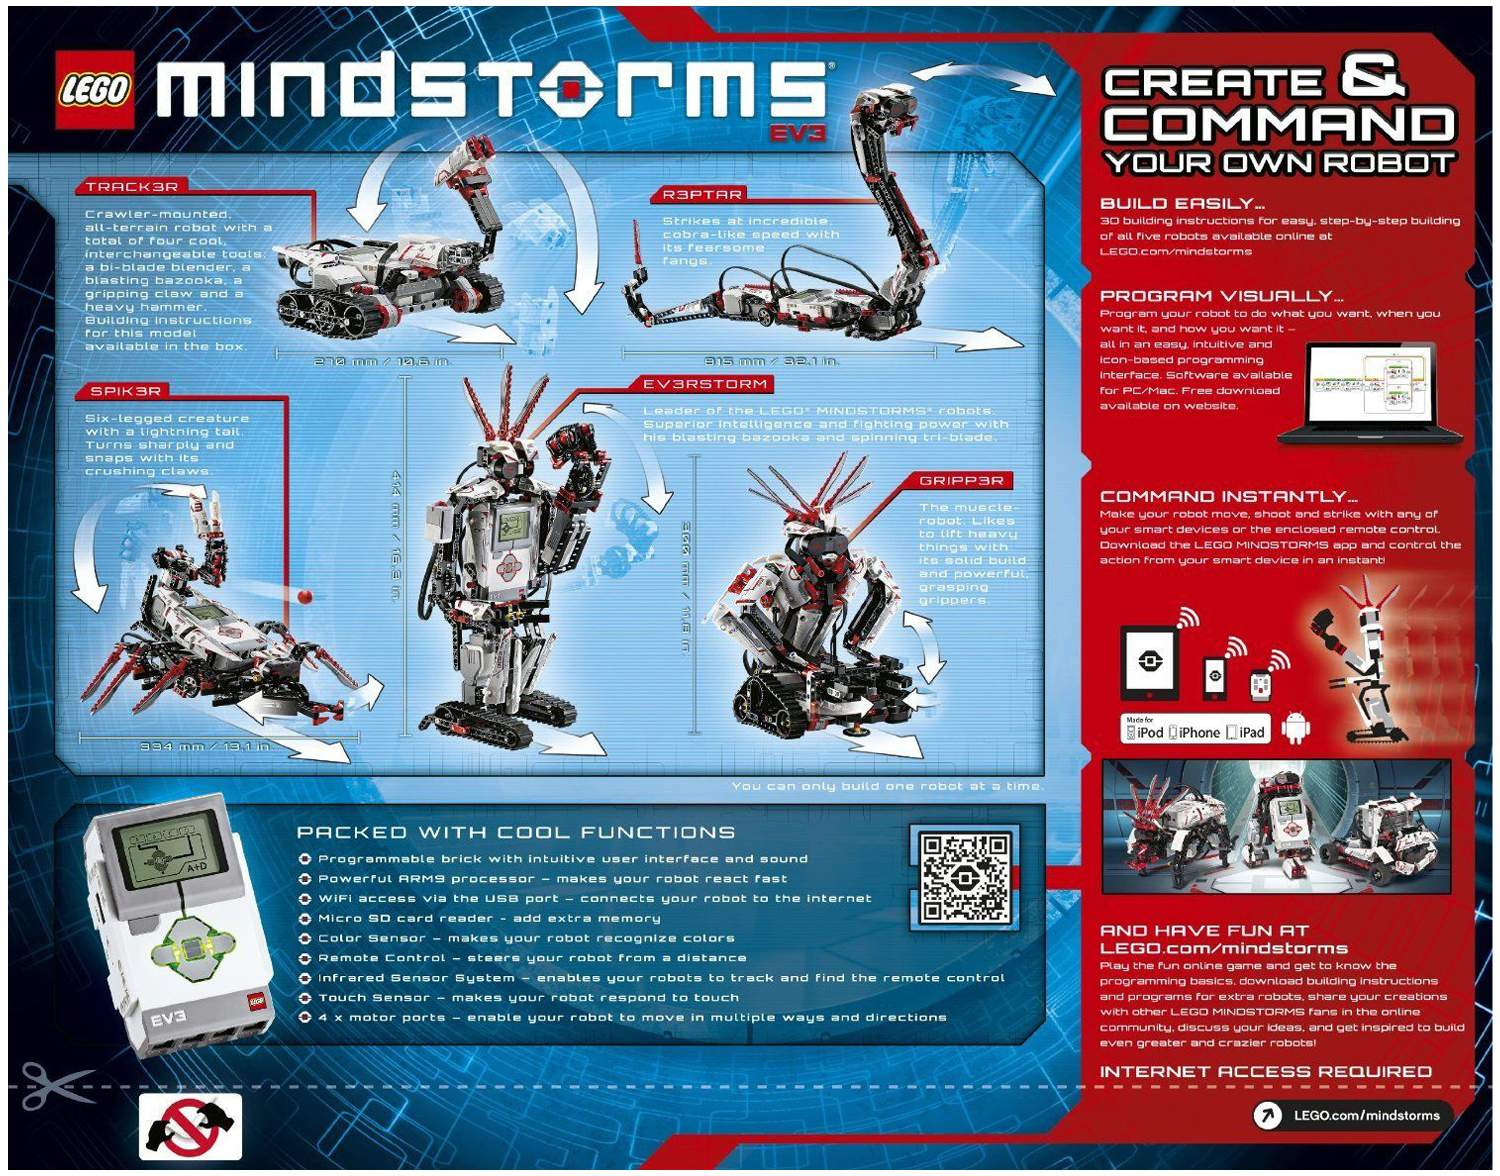 Lego Mindstorms Nxt Vs Ev3